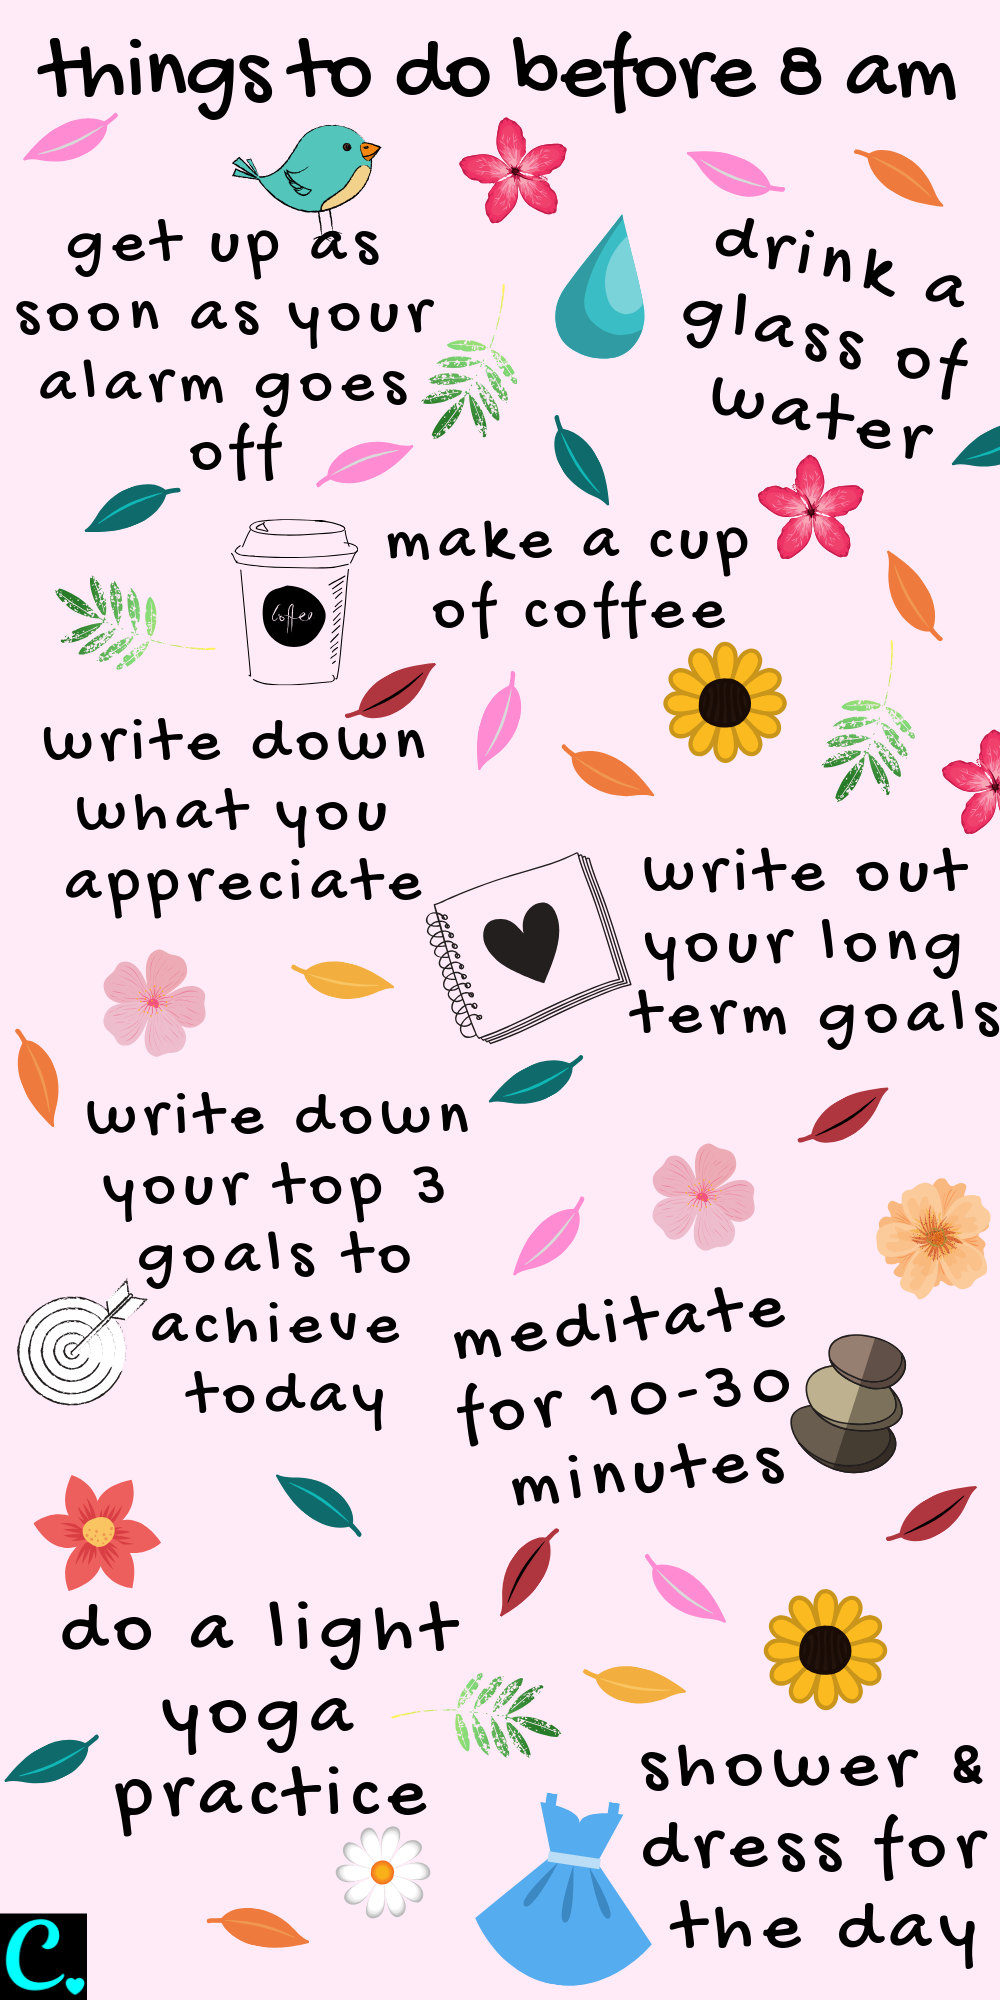 The best morning routine infographic   * things to do before 8 am   Productivity tips   habits for success   #productivityinfographic #productivitytips #morningroutine #infographic #morningroutineinfographic #healthyroutineinforgraphic #captivatingcrazy Via: https://captivatingcrazy.com